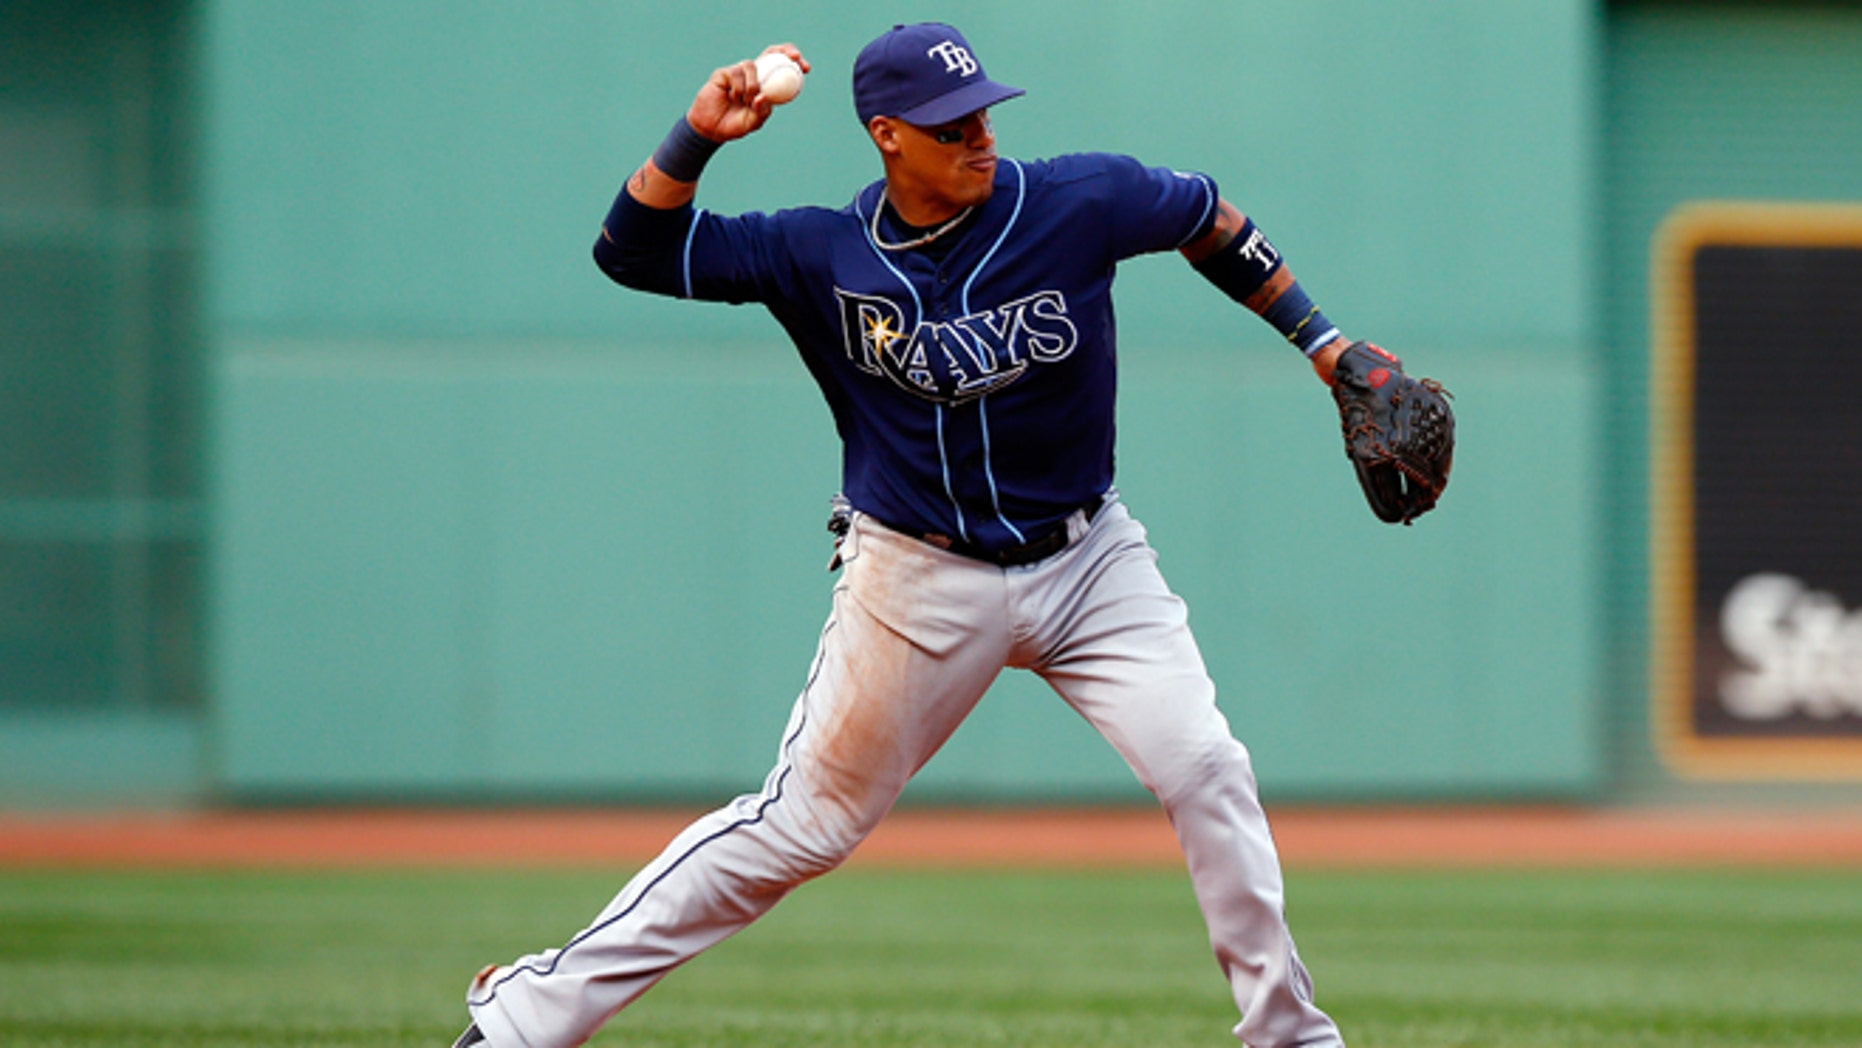 BOSTON, MA - OCTOBER 04:  Yunel Escobar #11 of the Tampa Bay Rays throws to first base against the Boston Red Sox during Game One of the American League Division Series at Fenway Park on October 4, 2013 in Boston, Massachusetts.  (Photo by Jared Wickerham/Getty Images)